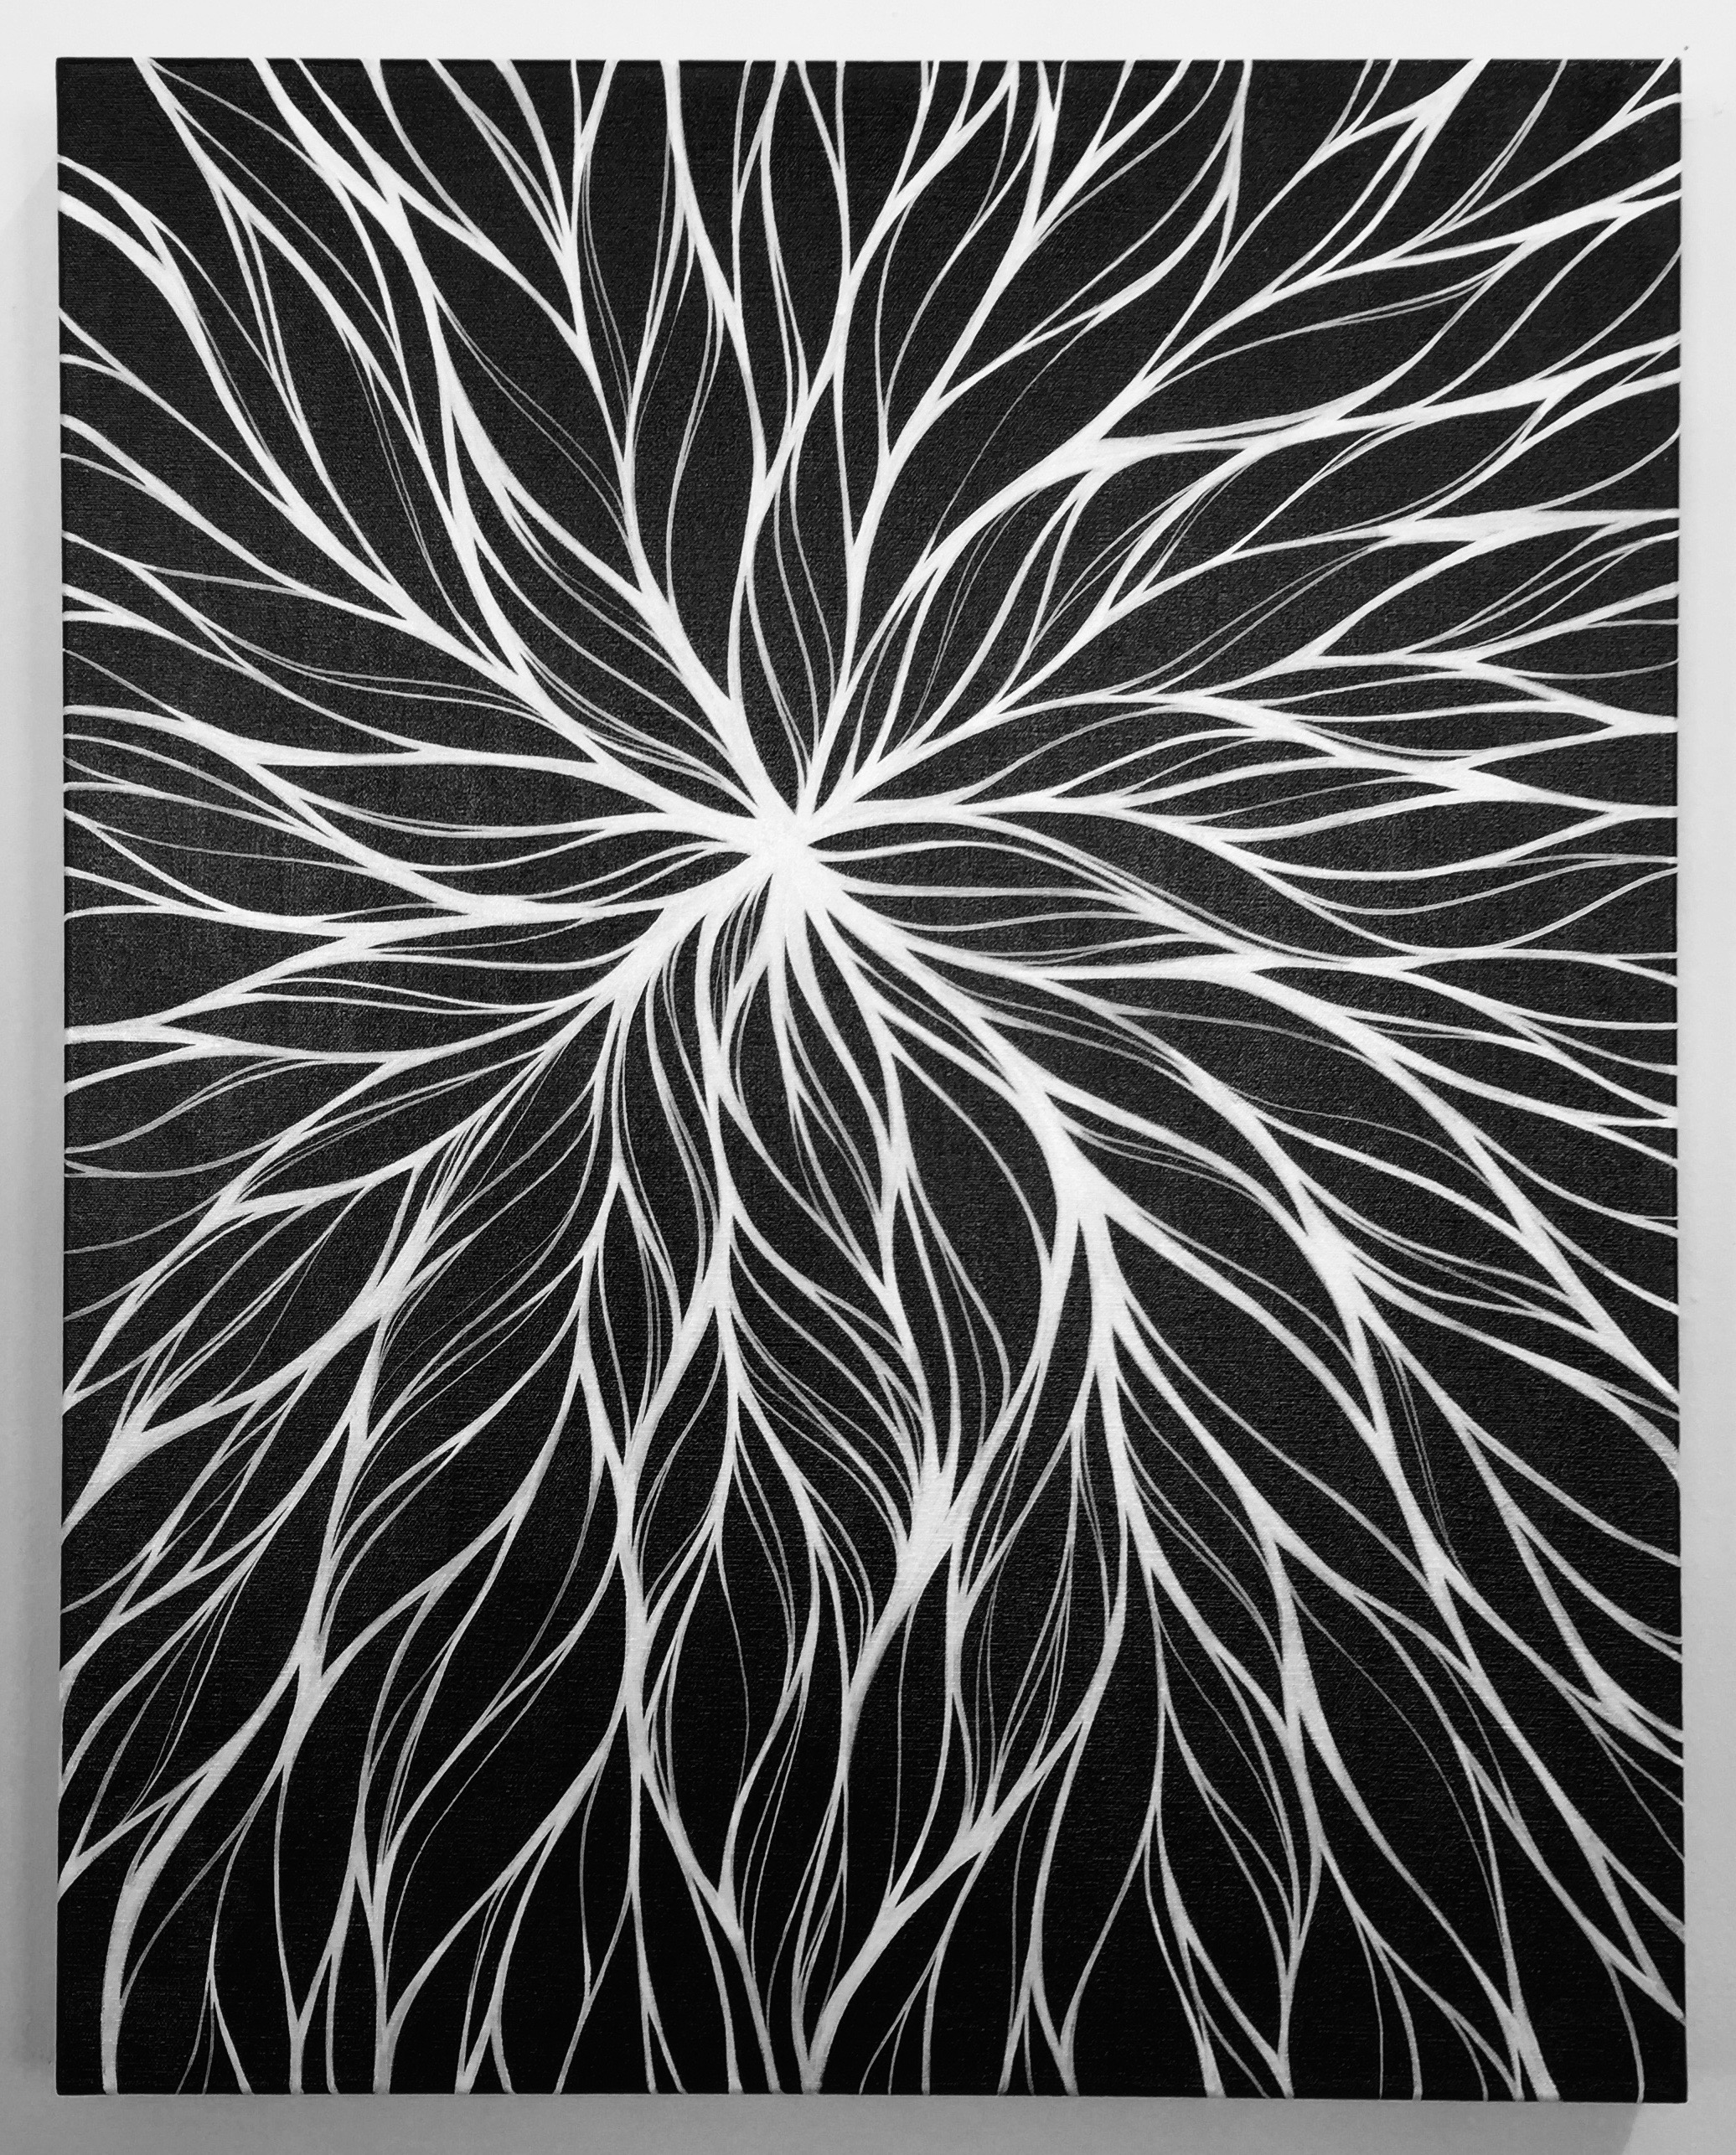 Through experimenting with inversion (white on top of a black ground) I found that the lines gained new vibrancy and an intense visual interest became focused on the emanation point.